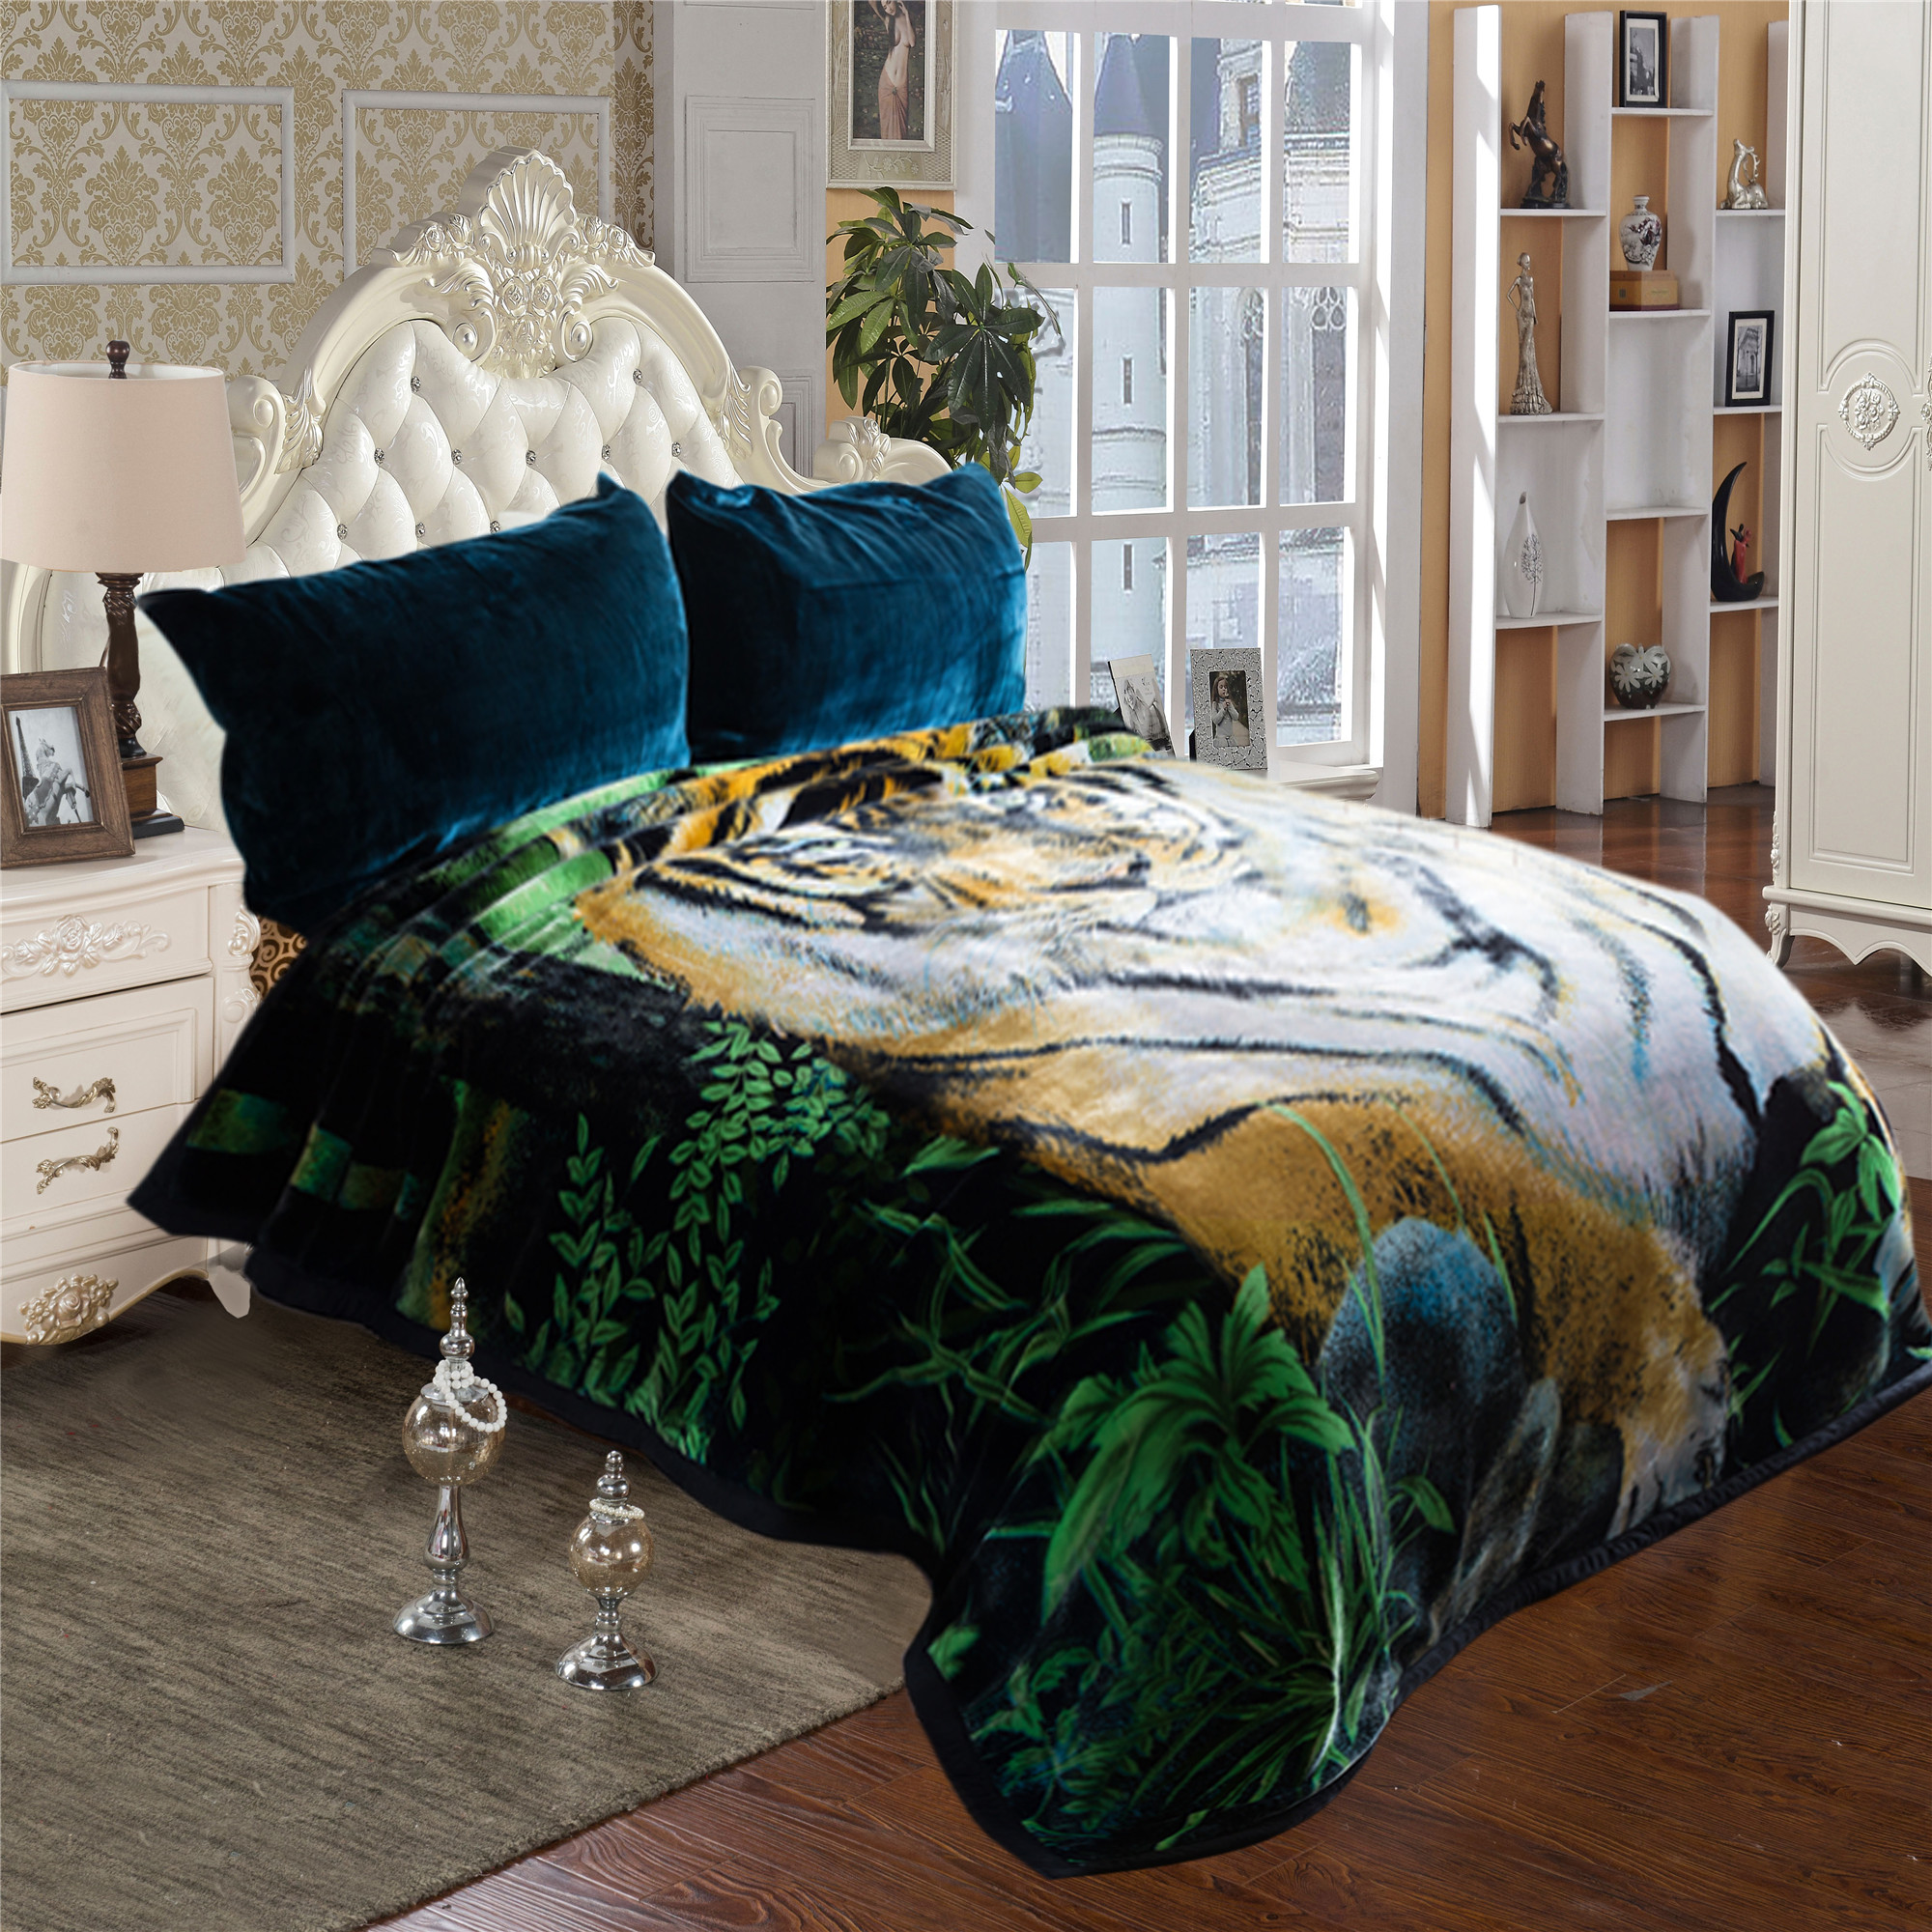 "Tiger Printed Cozy Warm Plush Fleece Blanket for Bed 2 Ply Heavy Thick Super Warm Winter Bed Blanket King 85"" x 95"",9lb"